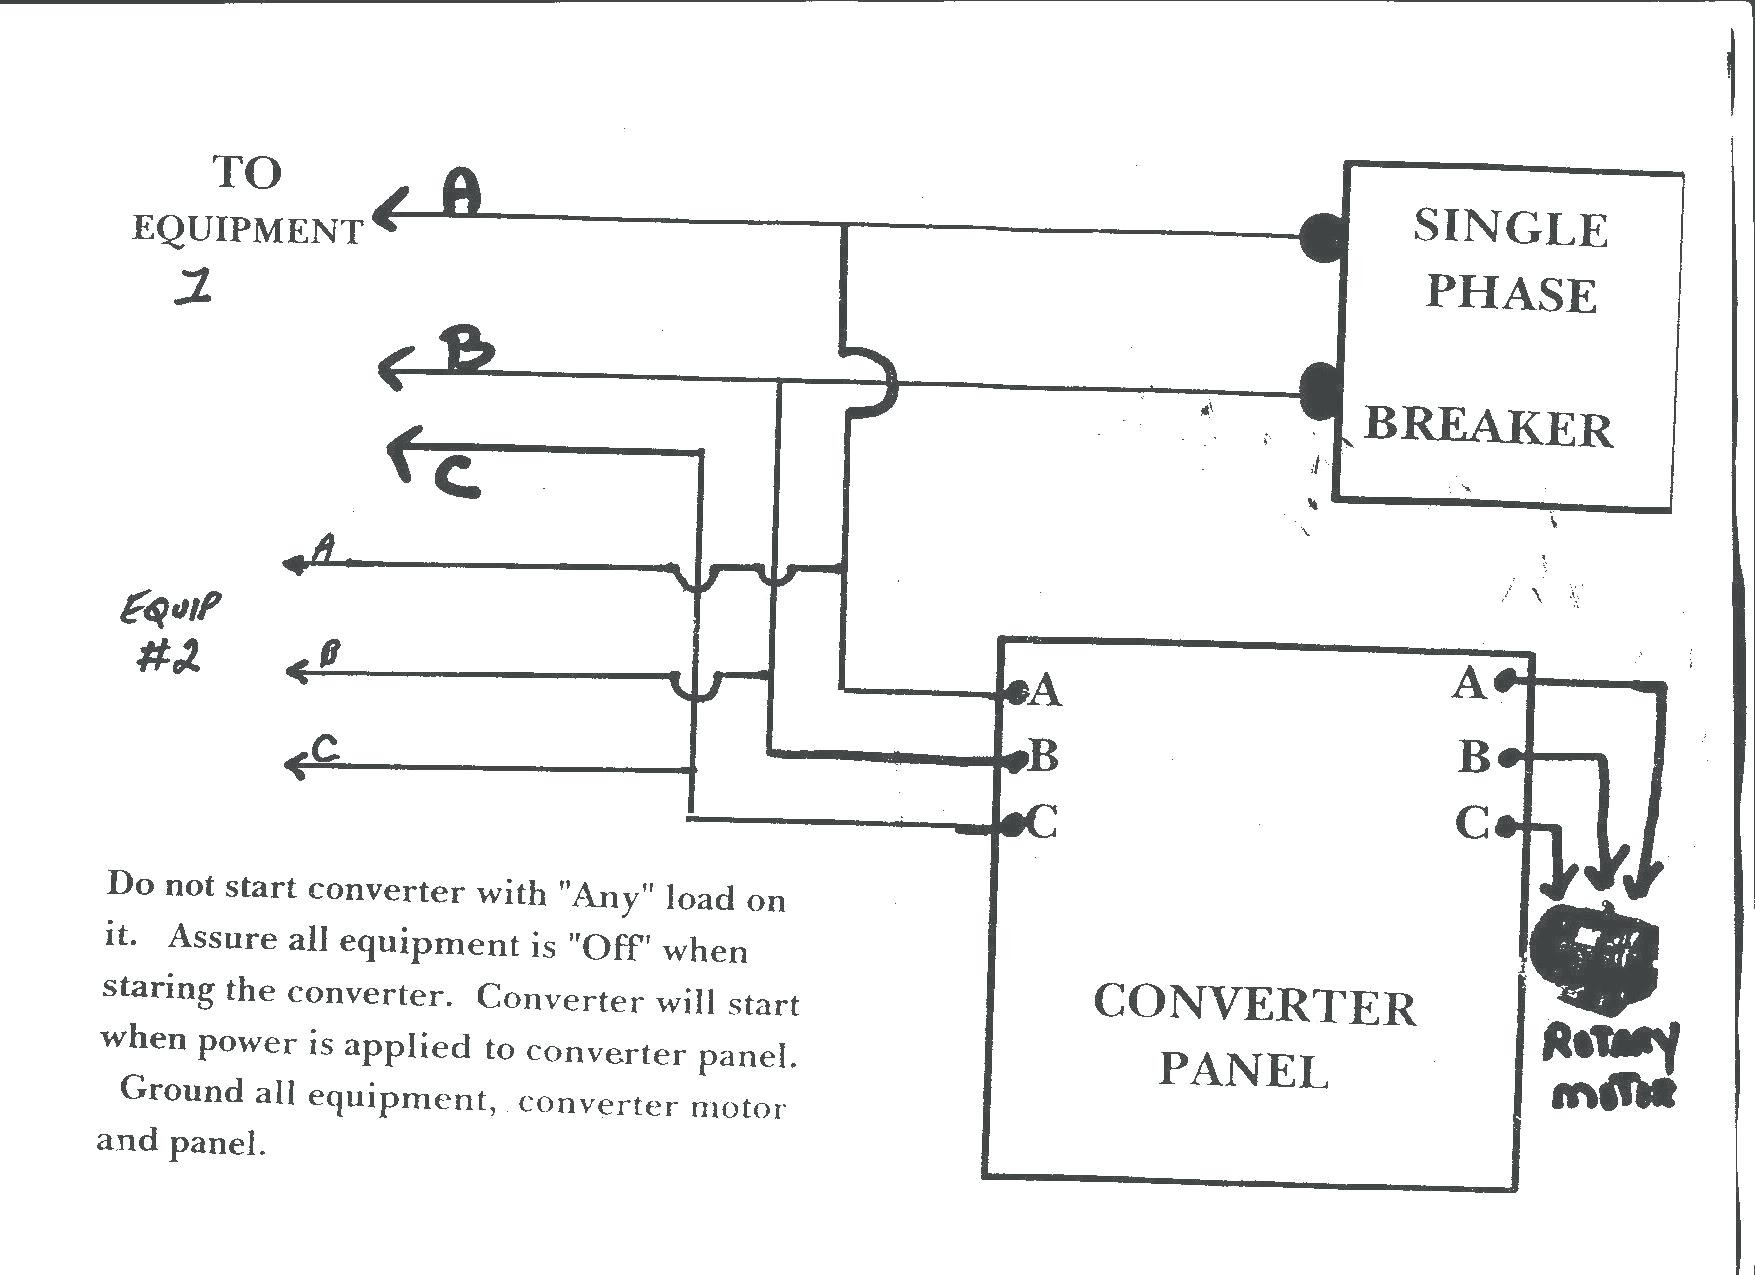 Des Co Phase Converter Wiring Diagram Trusted Diagrams Mcquay Snyder Three 3 Schematic